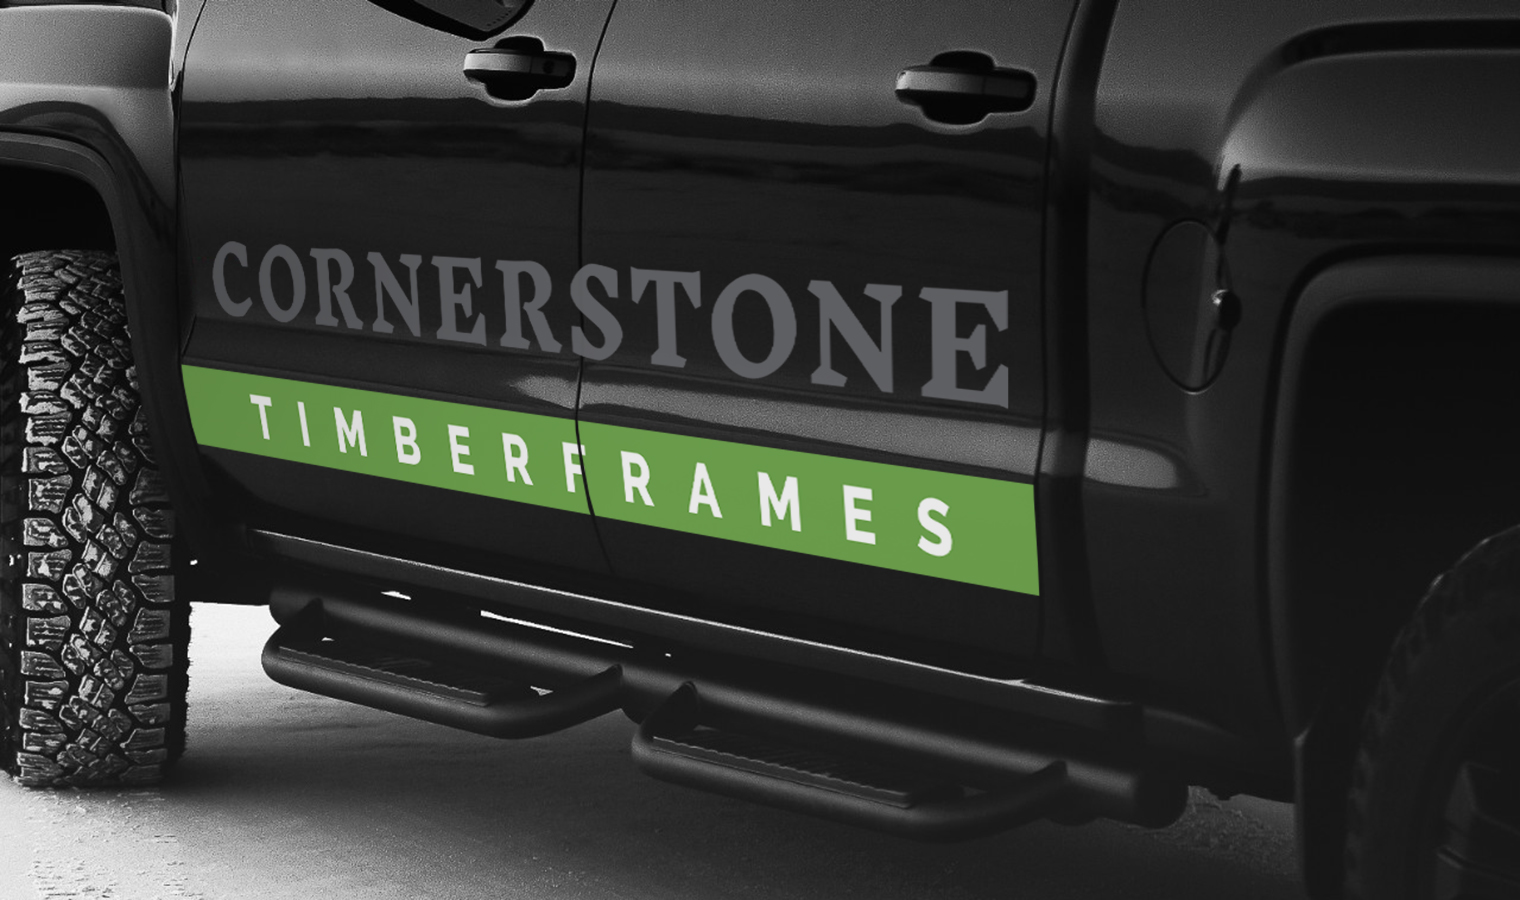 Cornertsone Timberframes Trucks Decal